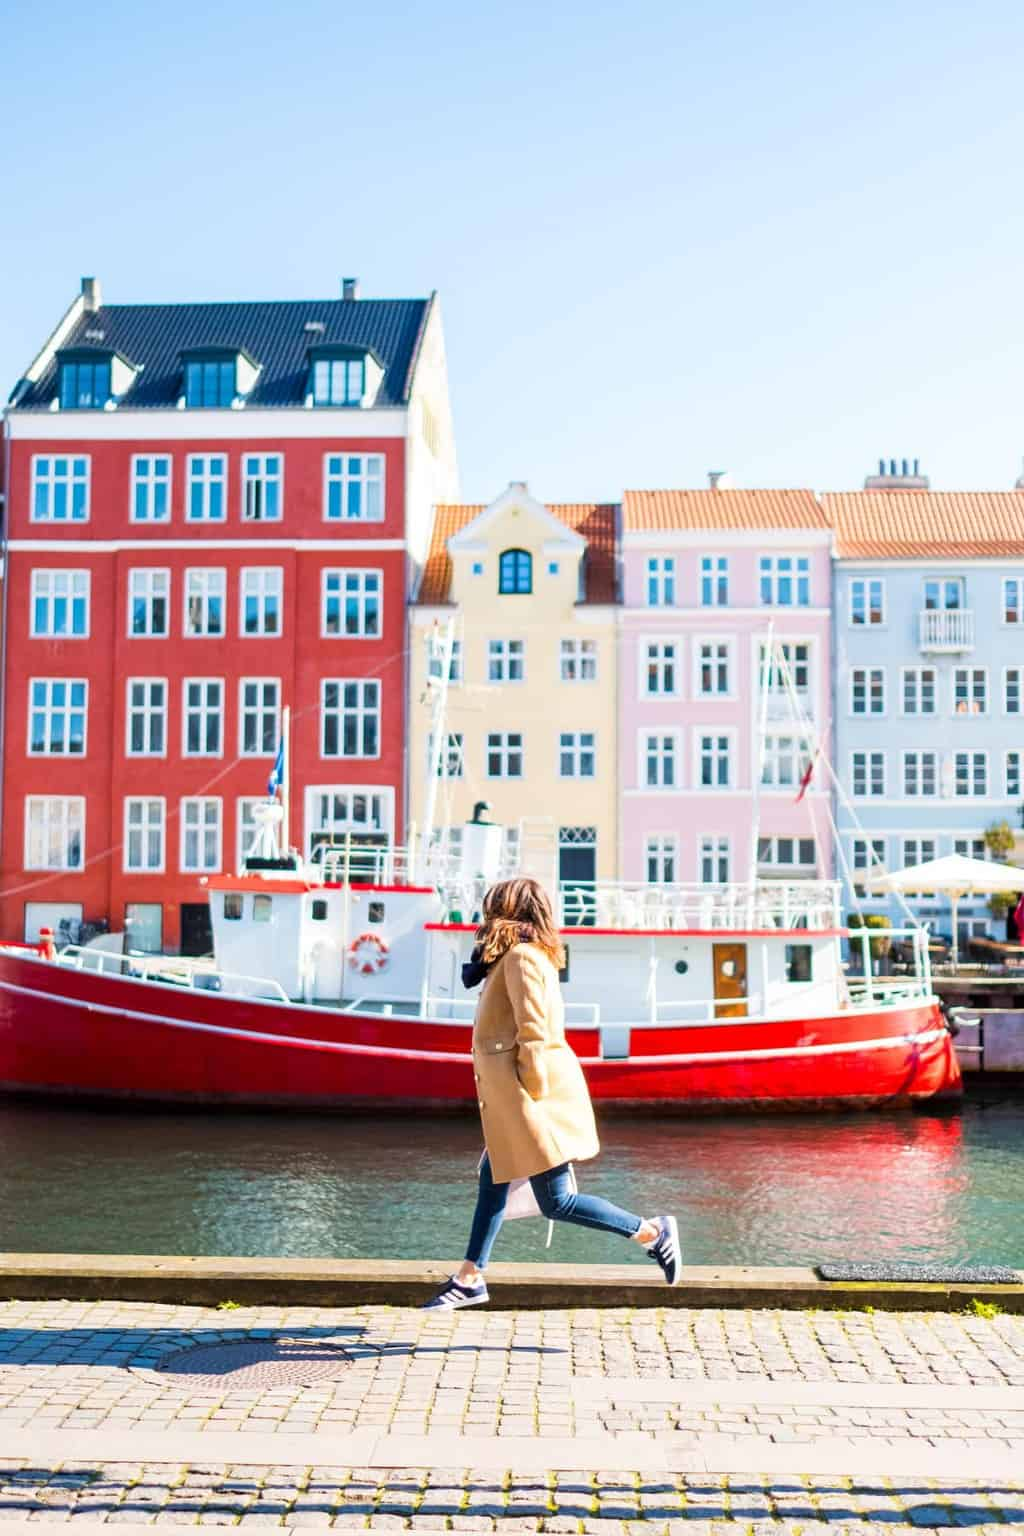 Our Scandinavian Travels: Copenhagen, Oslo, + Berlin!